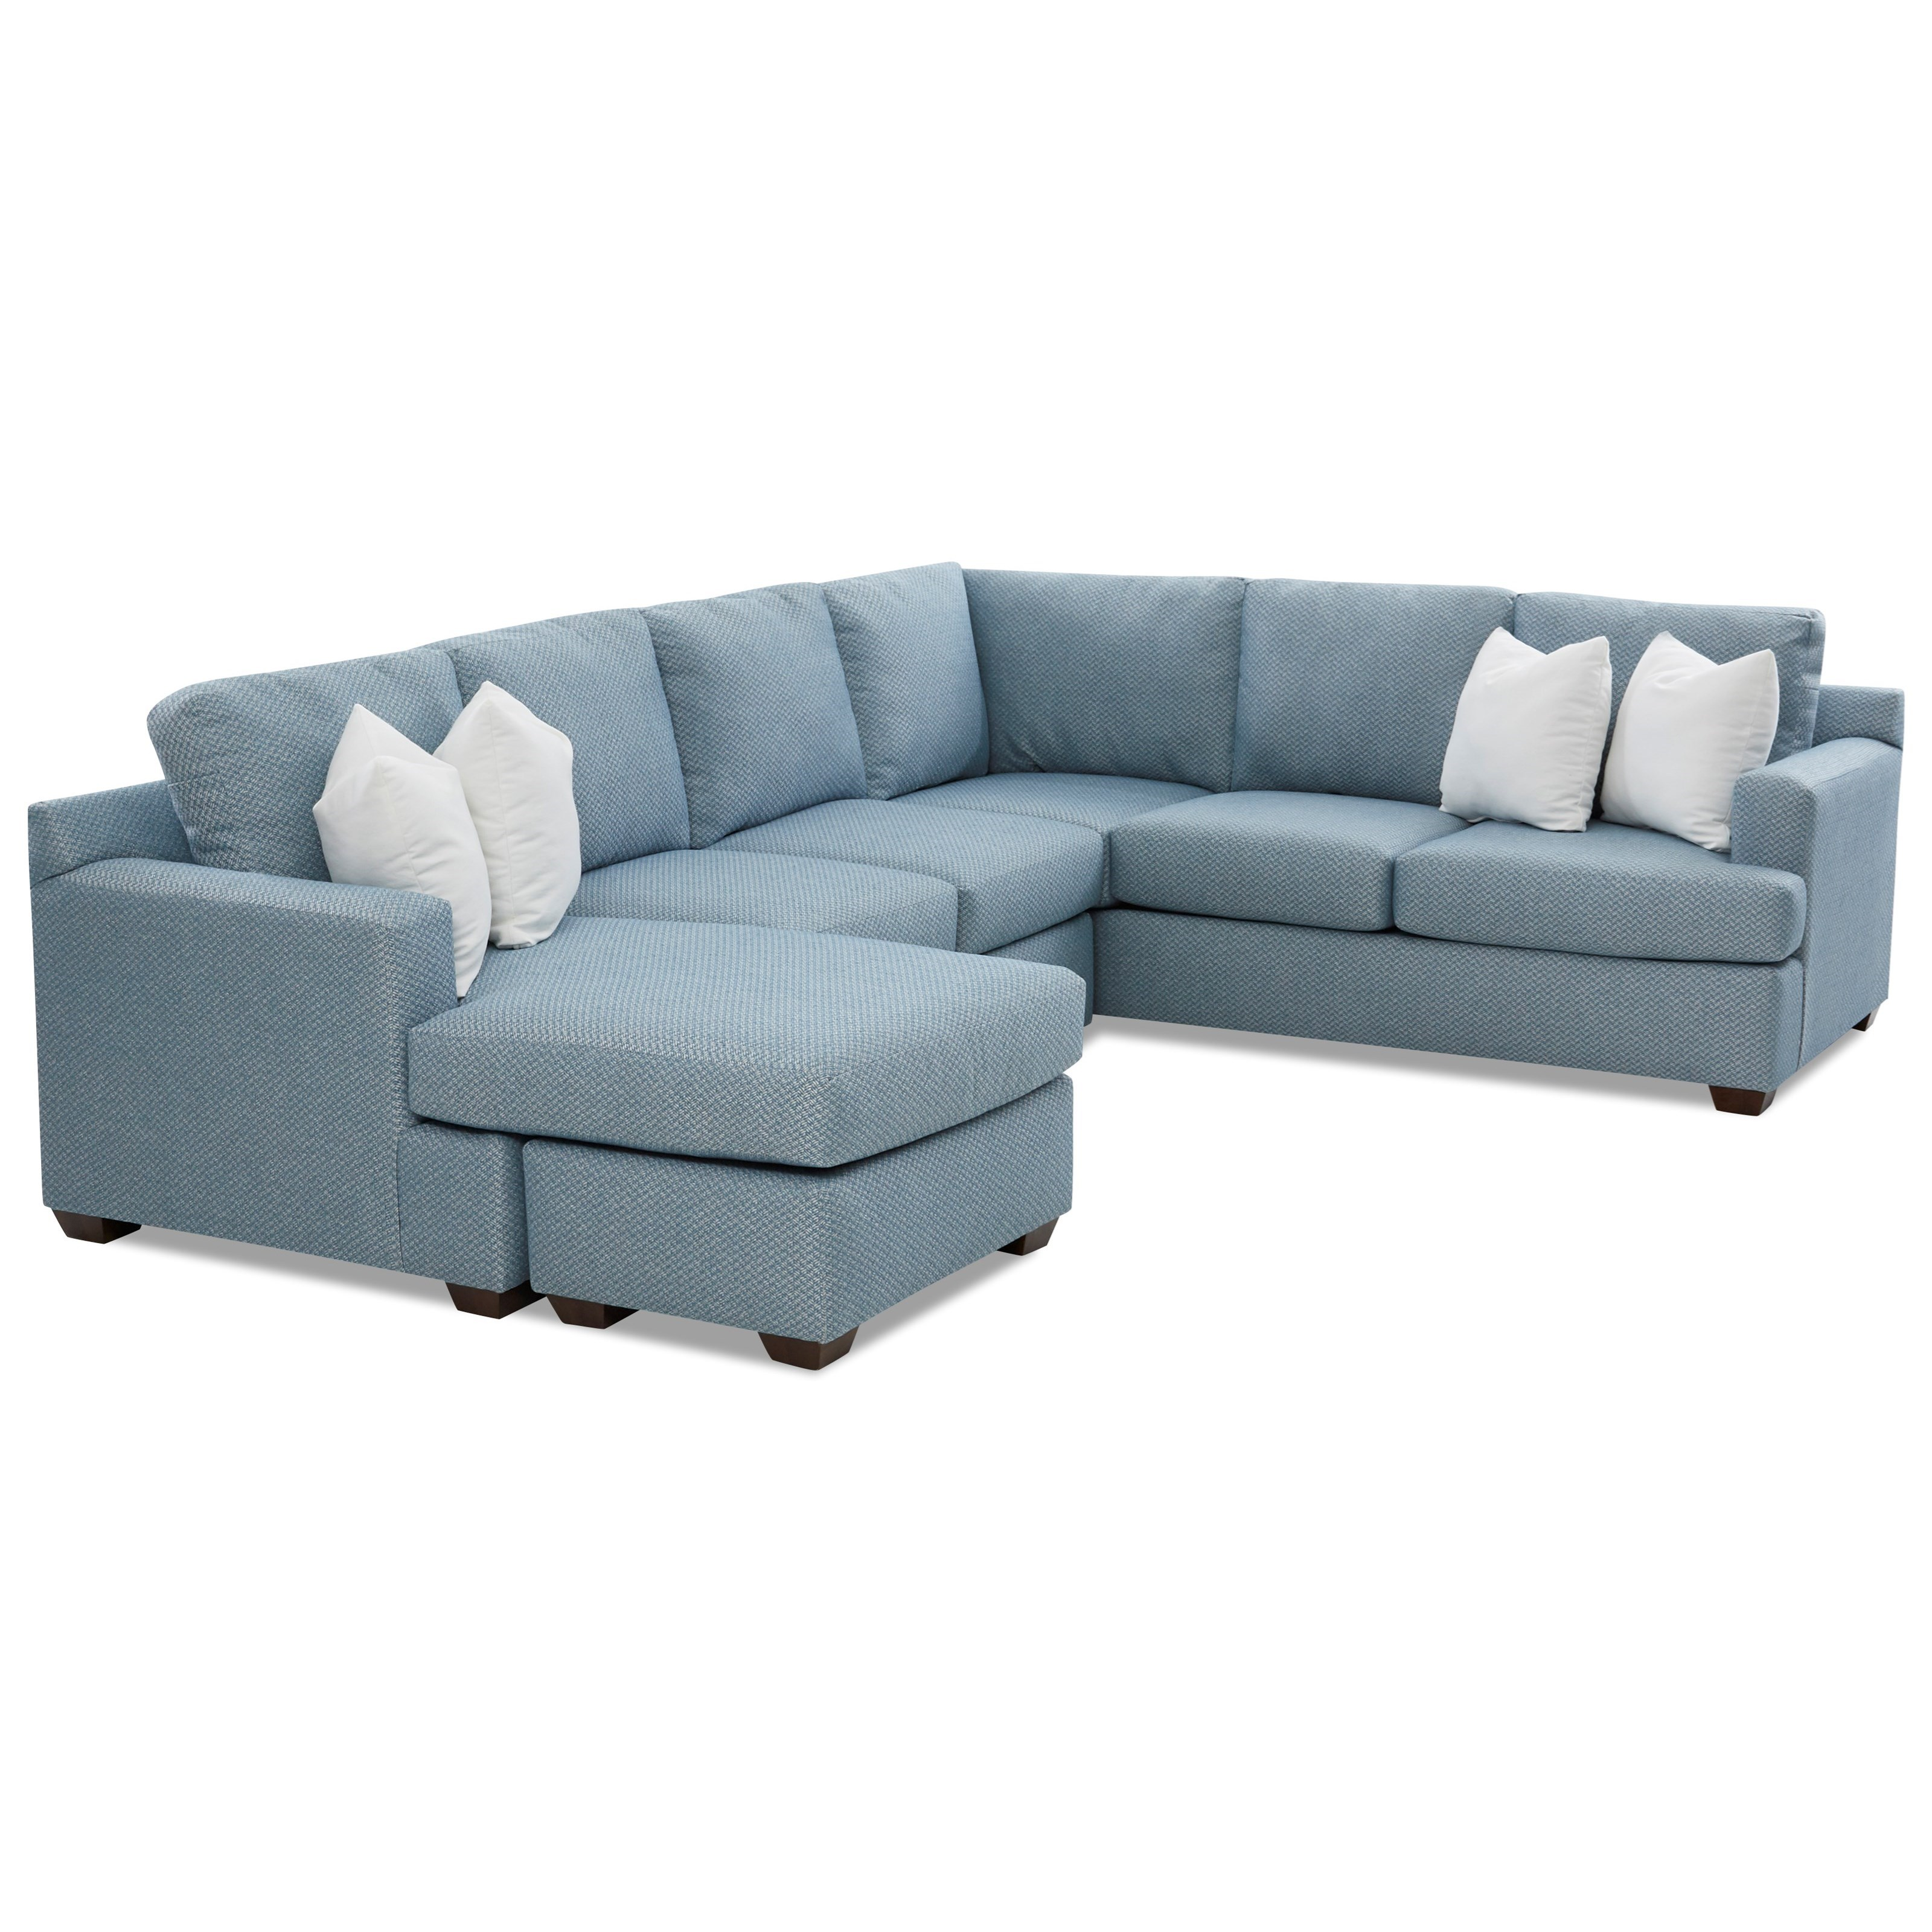 Juniper 5-Seat Sectional Sofa with LAF Chaise by Klaussner at Johnny Janosik